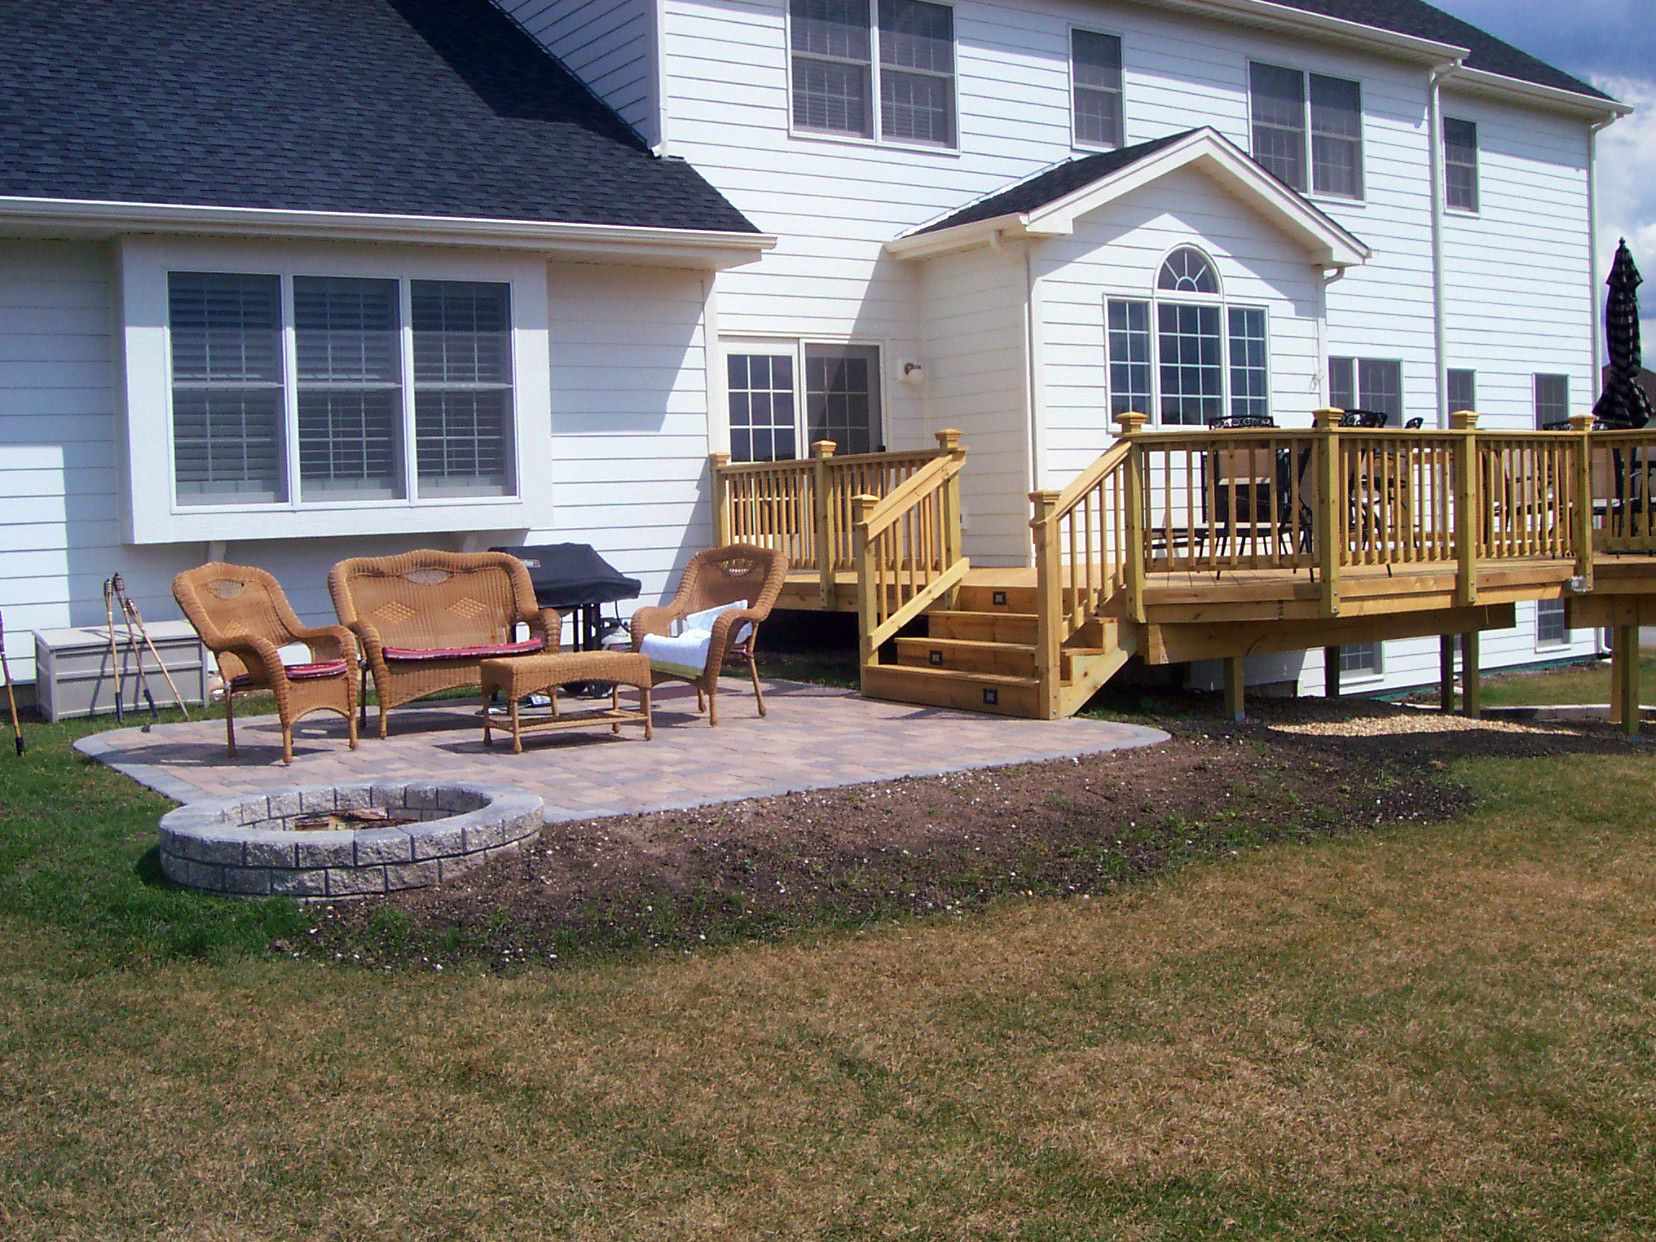 Deck and Patio Design with Built in Fire Pit in Hawthorn Woods, IL #backyardpatiodesigns